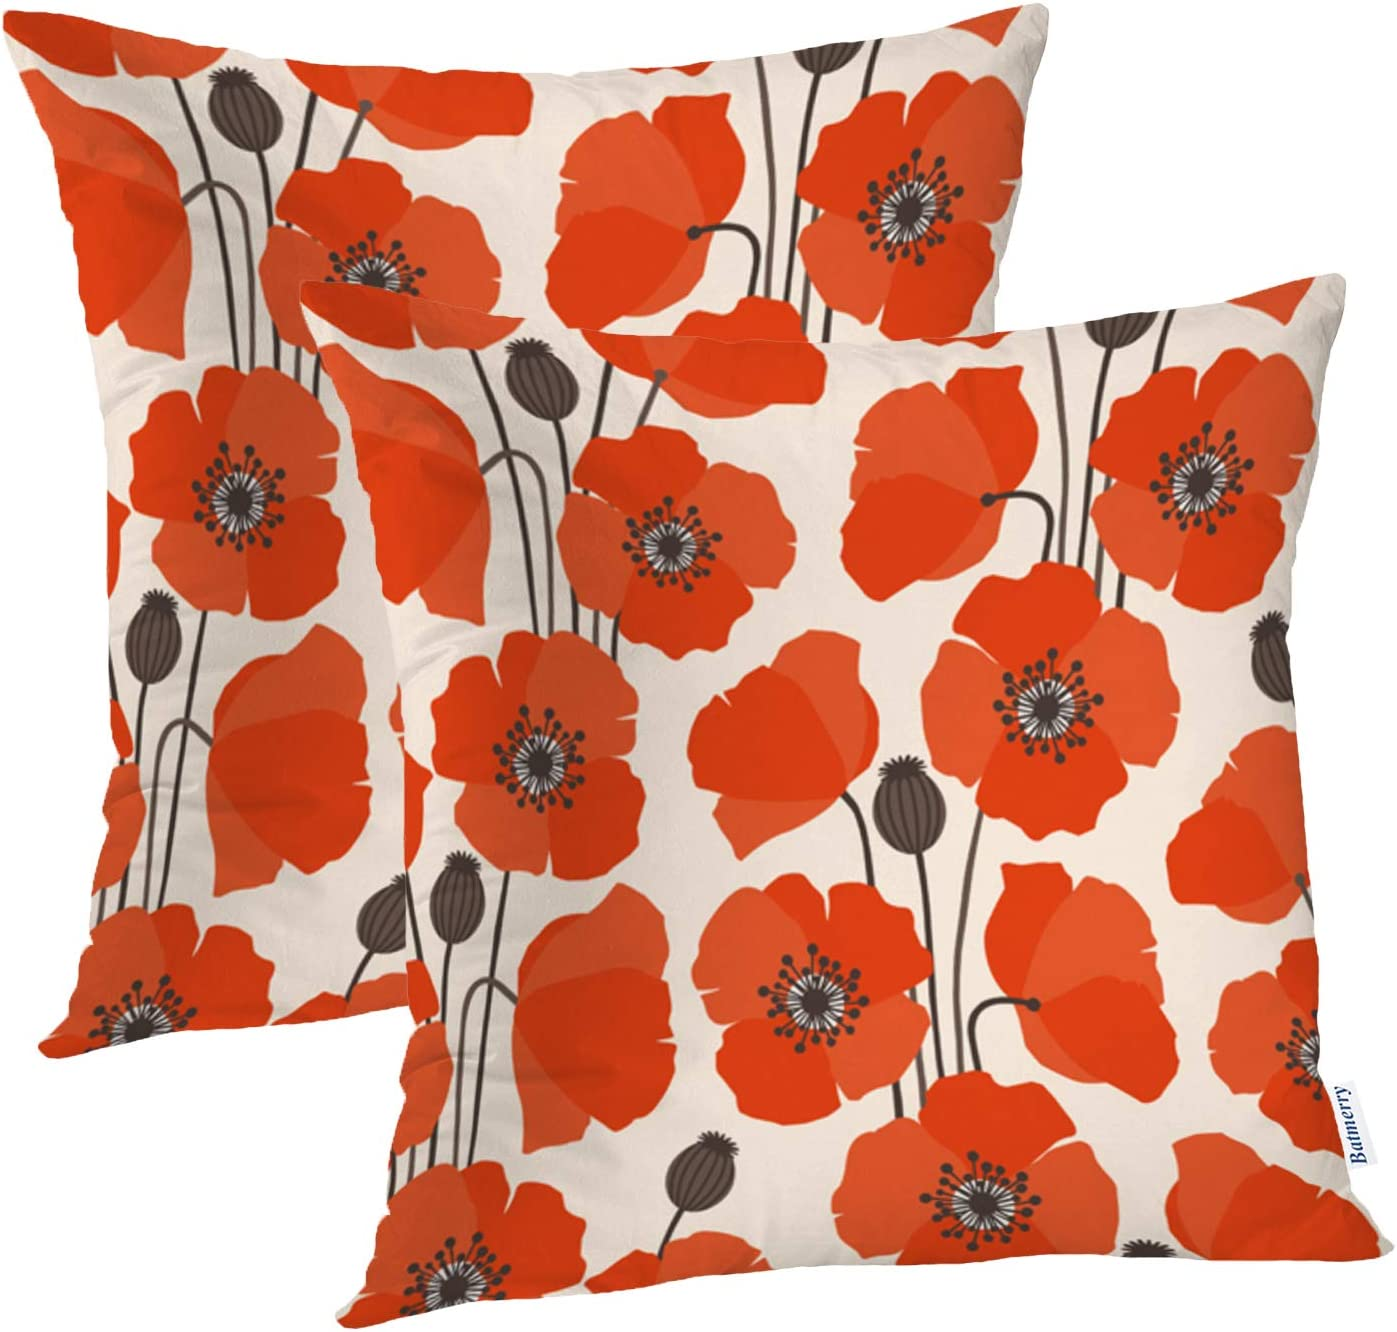 Batmerry Spring Pillows Decorative Throw Pillow Covers 18x18 Inch Set of 2, Poppy Poppy Flower Red Nature Retro Seeds Spring Double Sided Square Pillow Cases Pillowcase Sofa Cushion